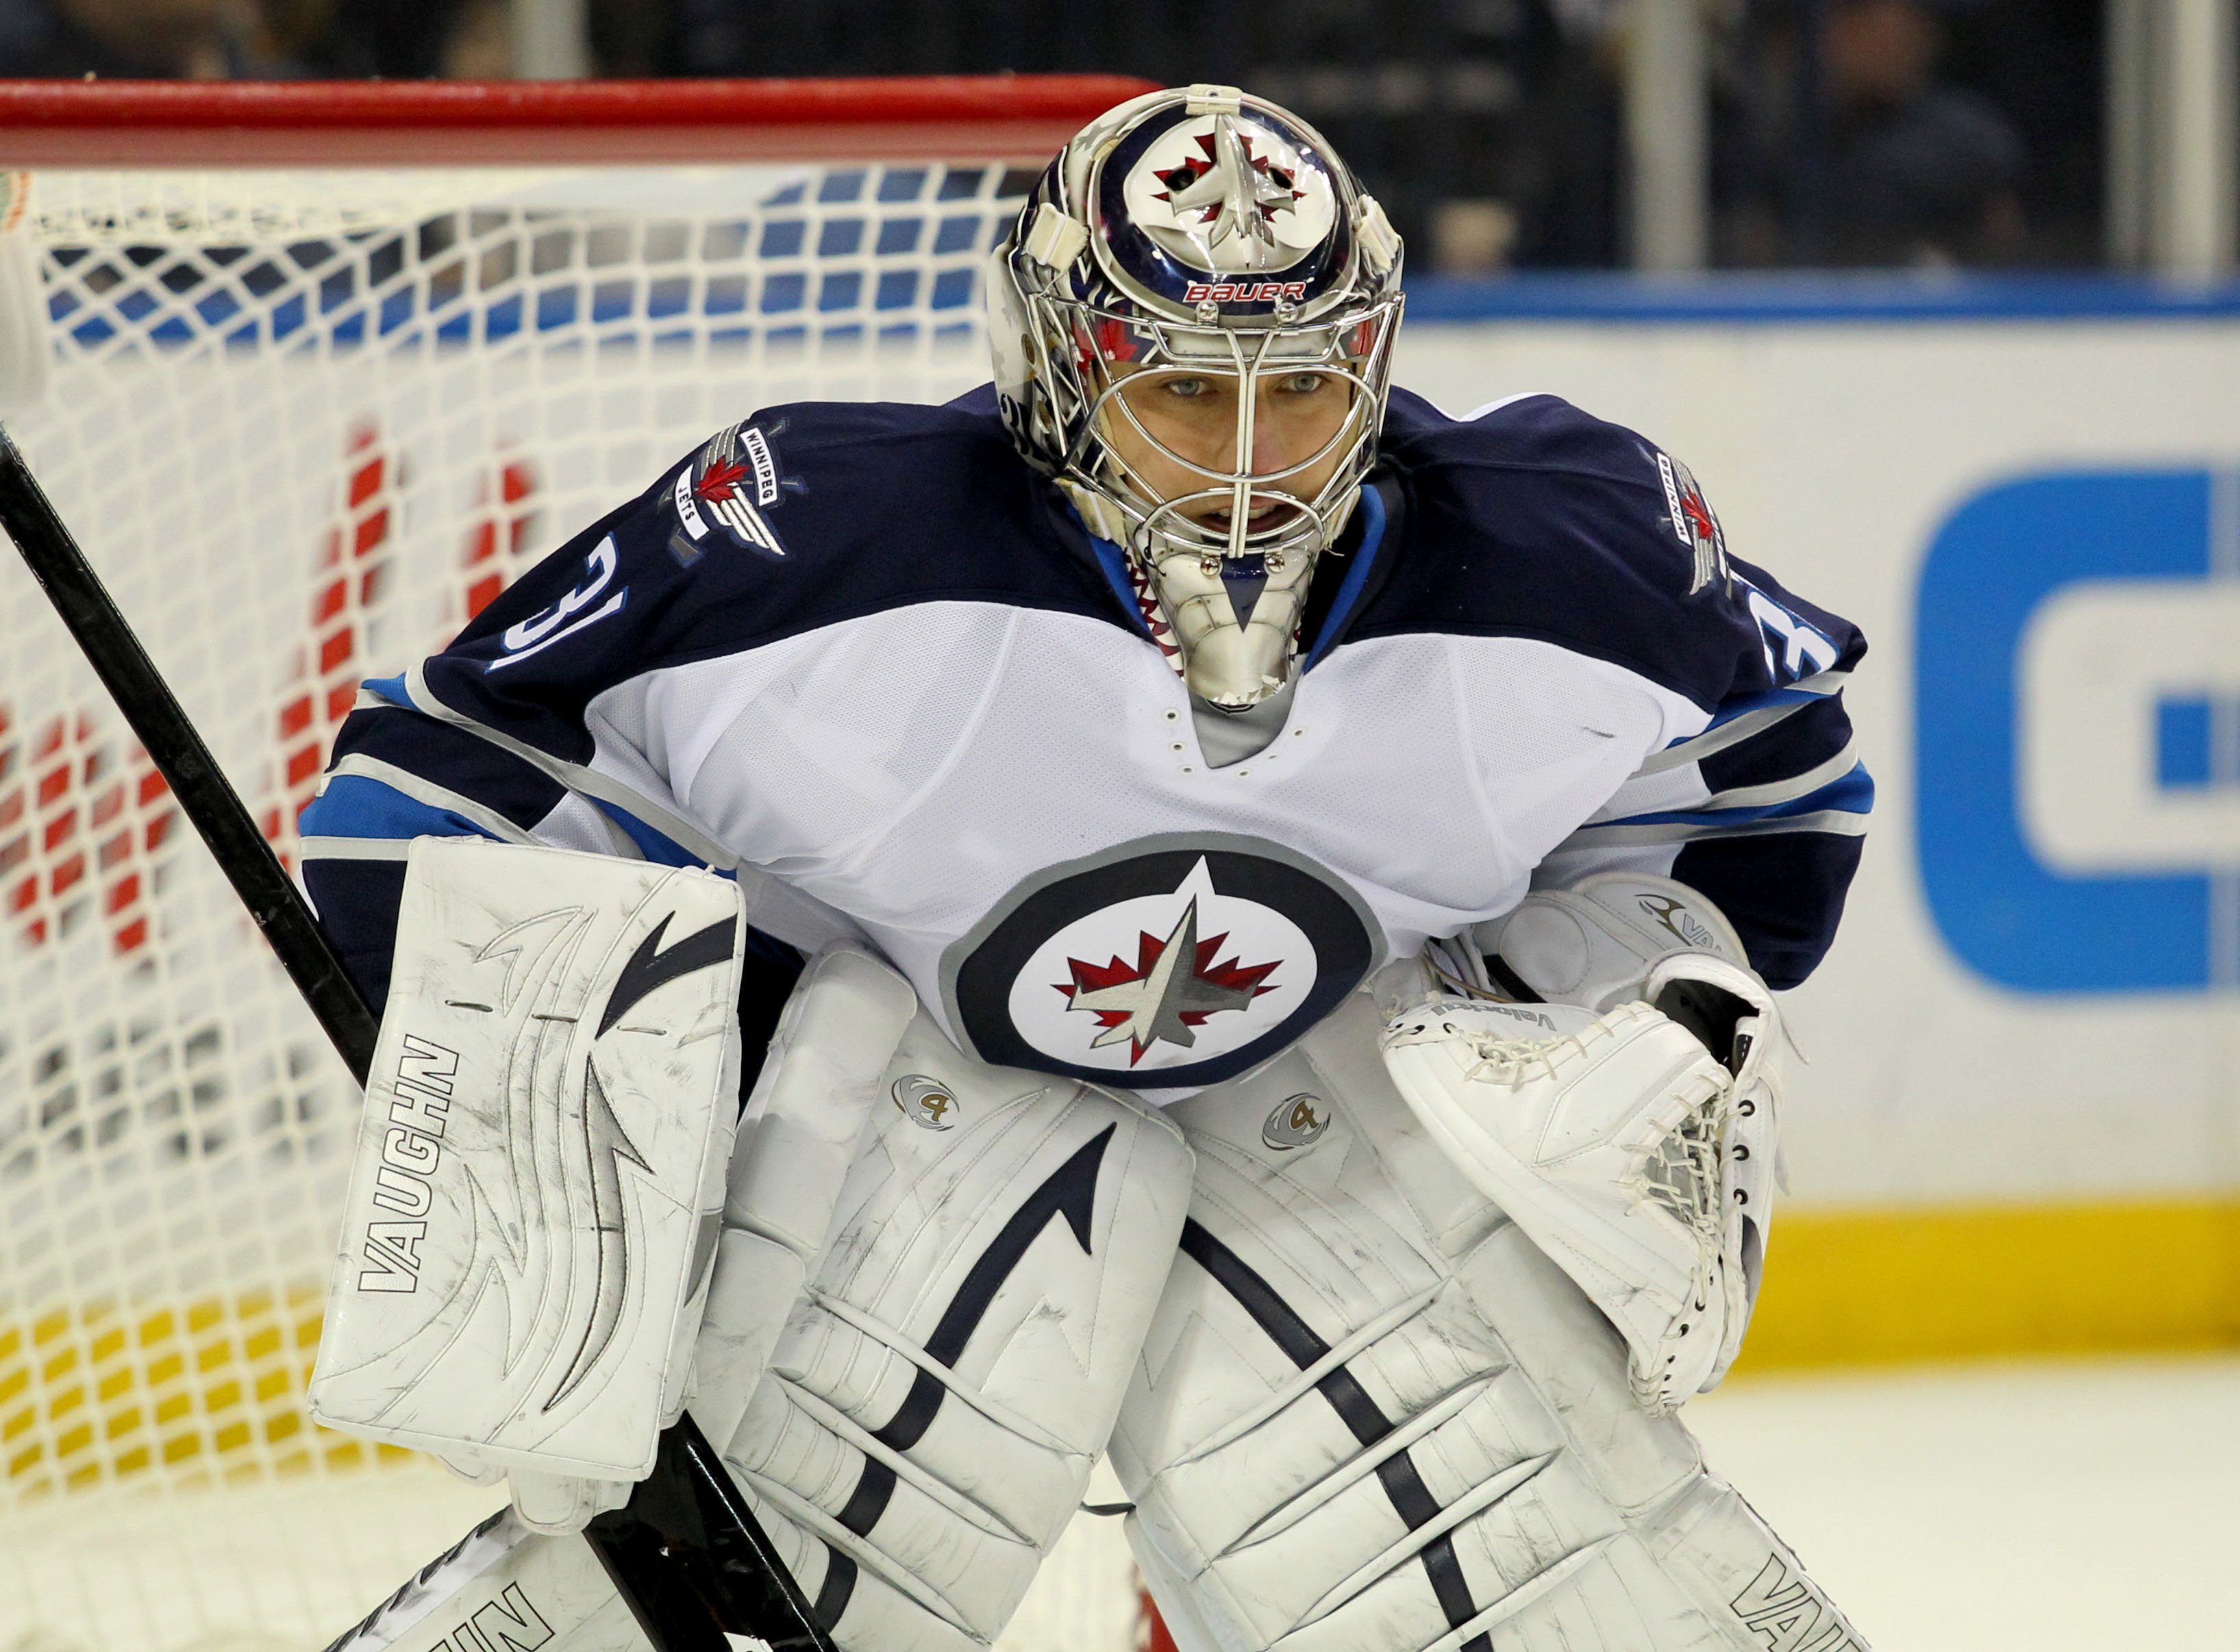 The Jets' Ondrej Pavelec had the best stats among Southeast goalies, but that's not saying much. (USA Today)